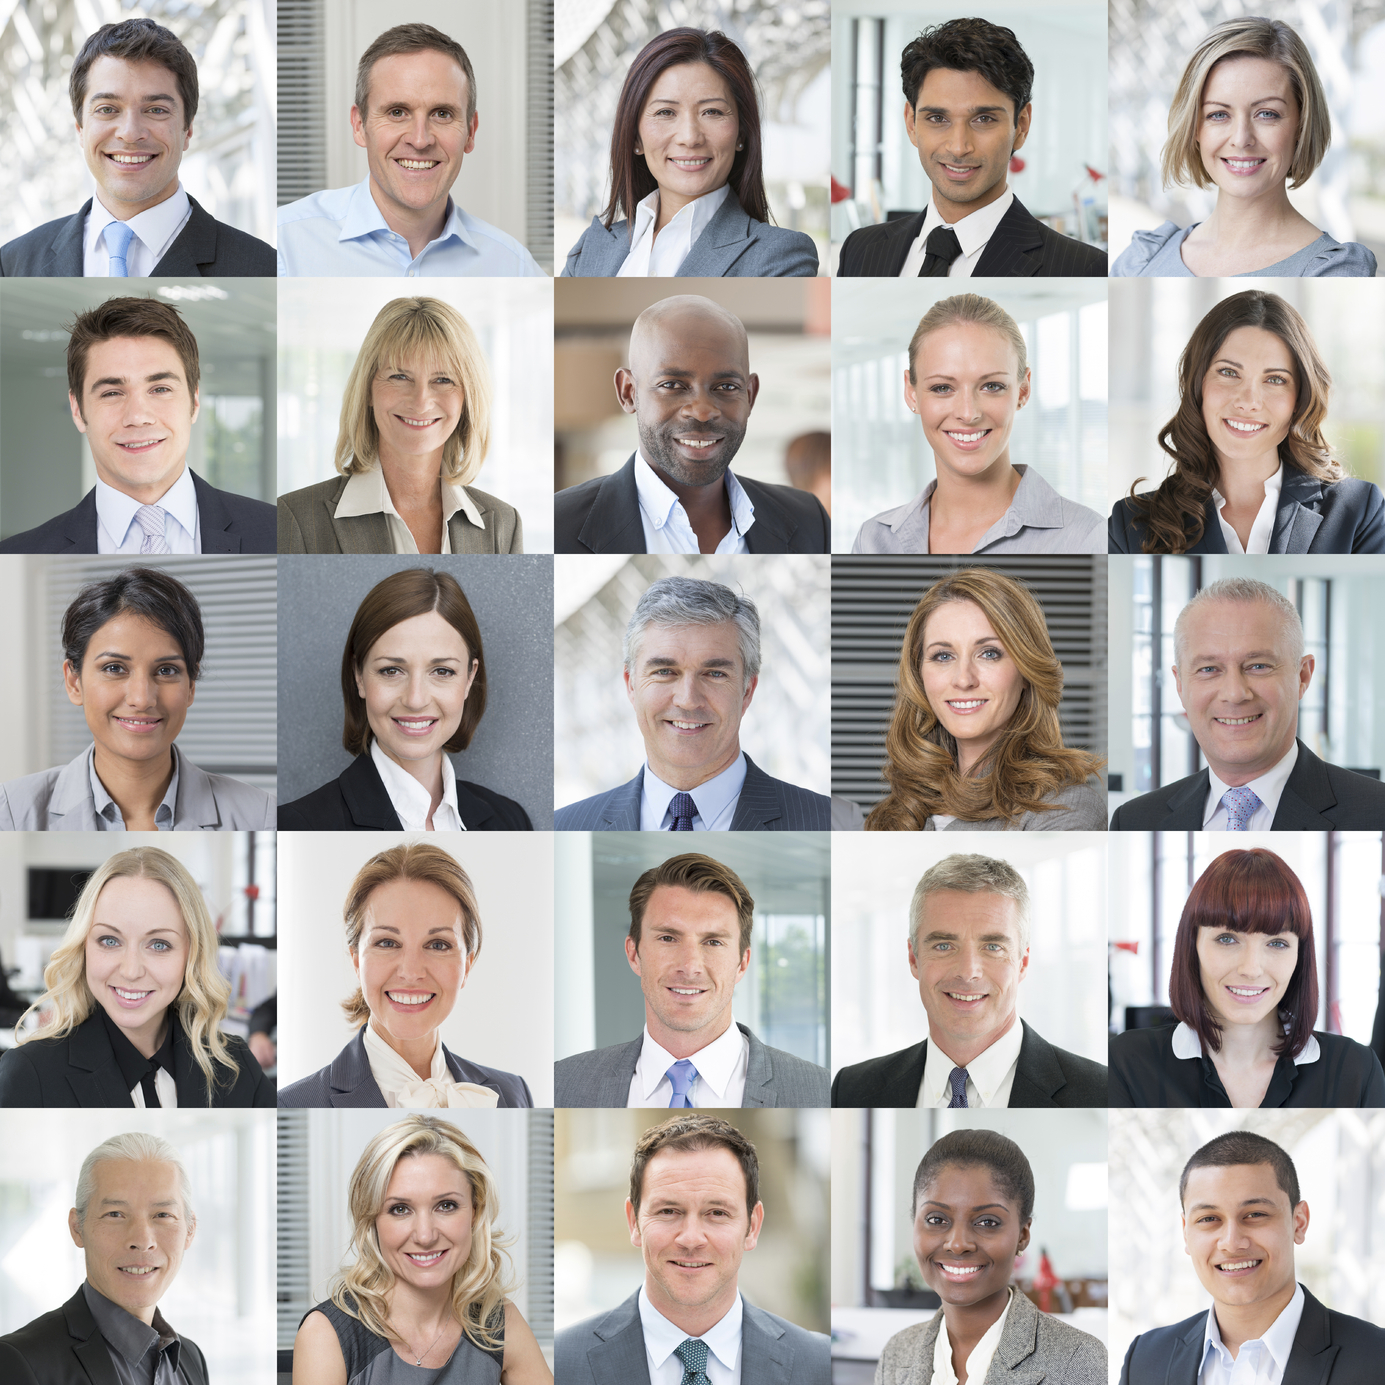 Headshot portraits of 25 different diverse business people smiling to camera.